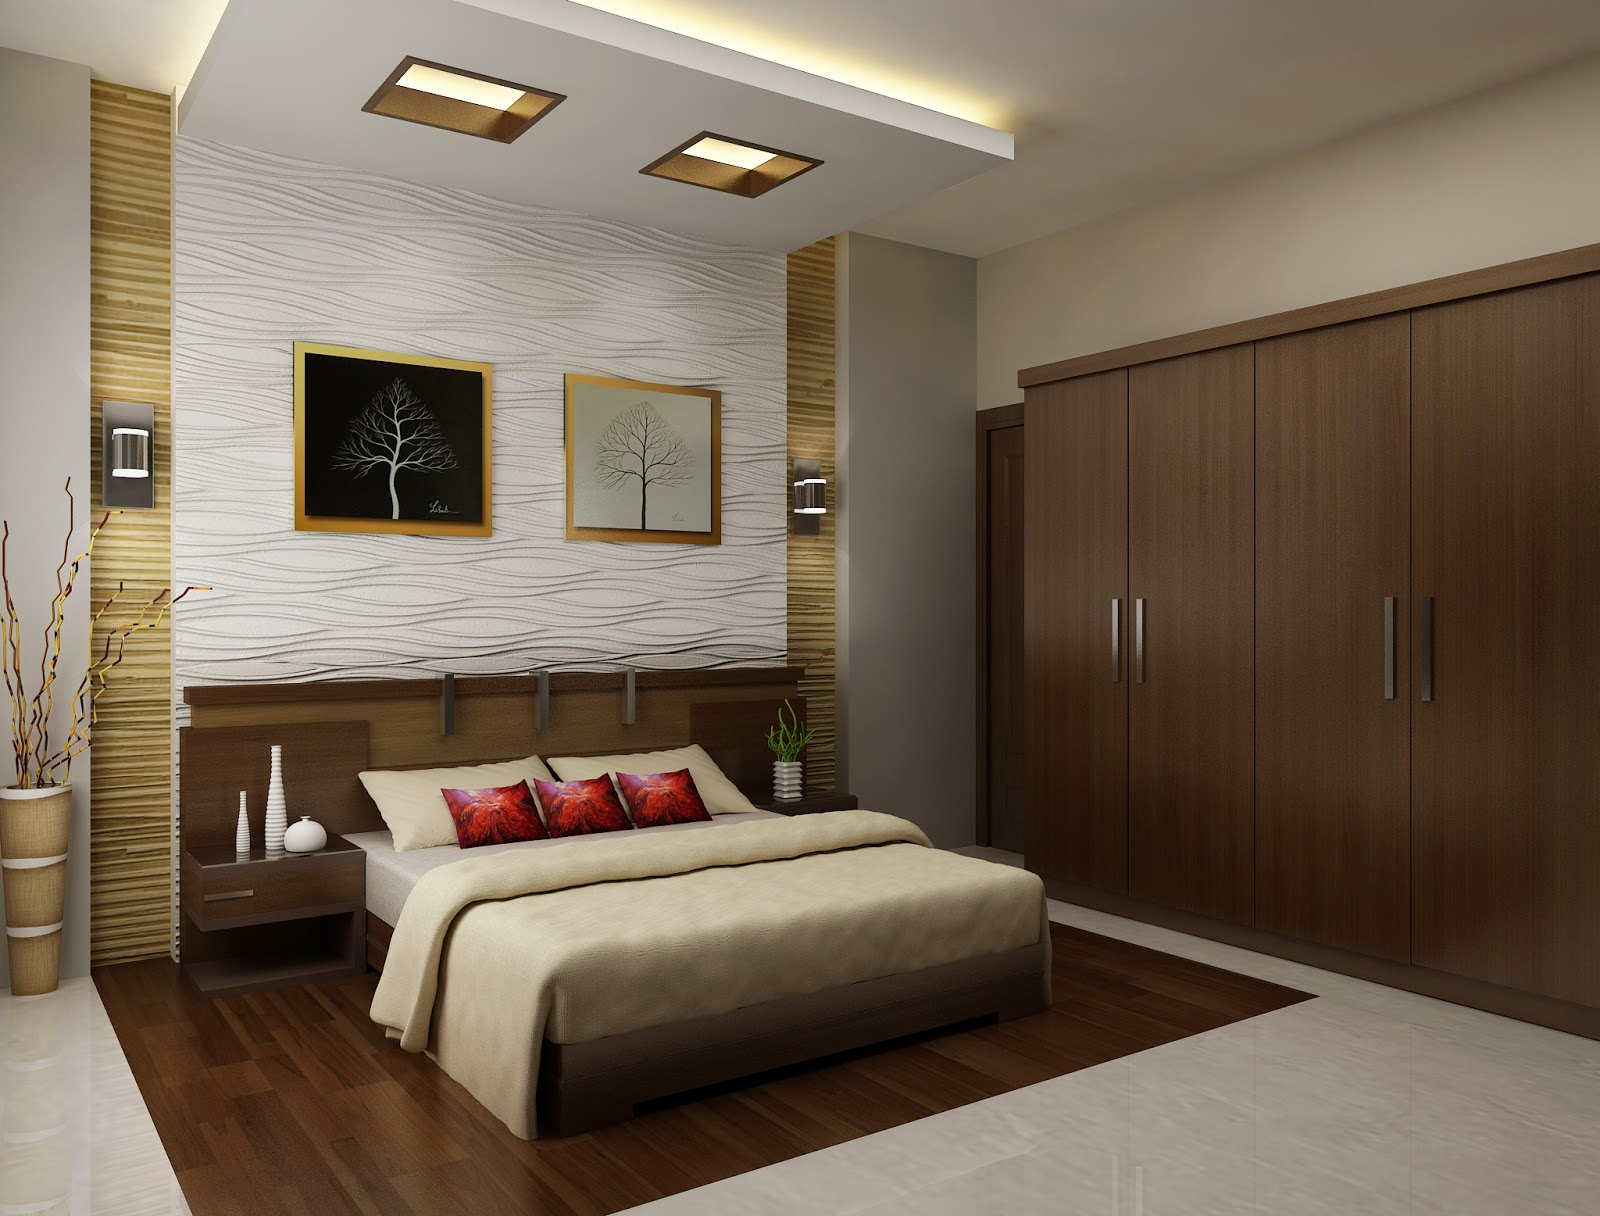 home interior design ideas india - home design ideas